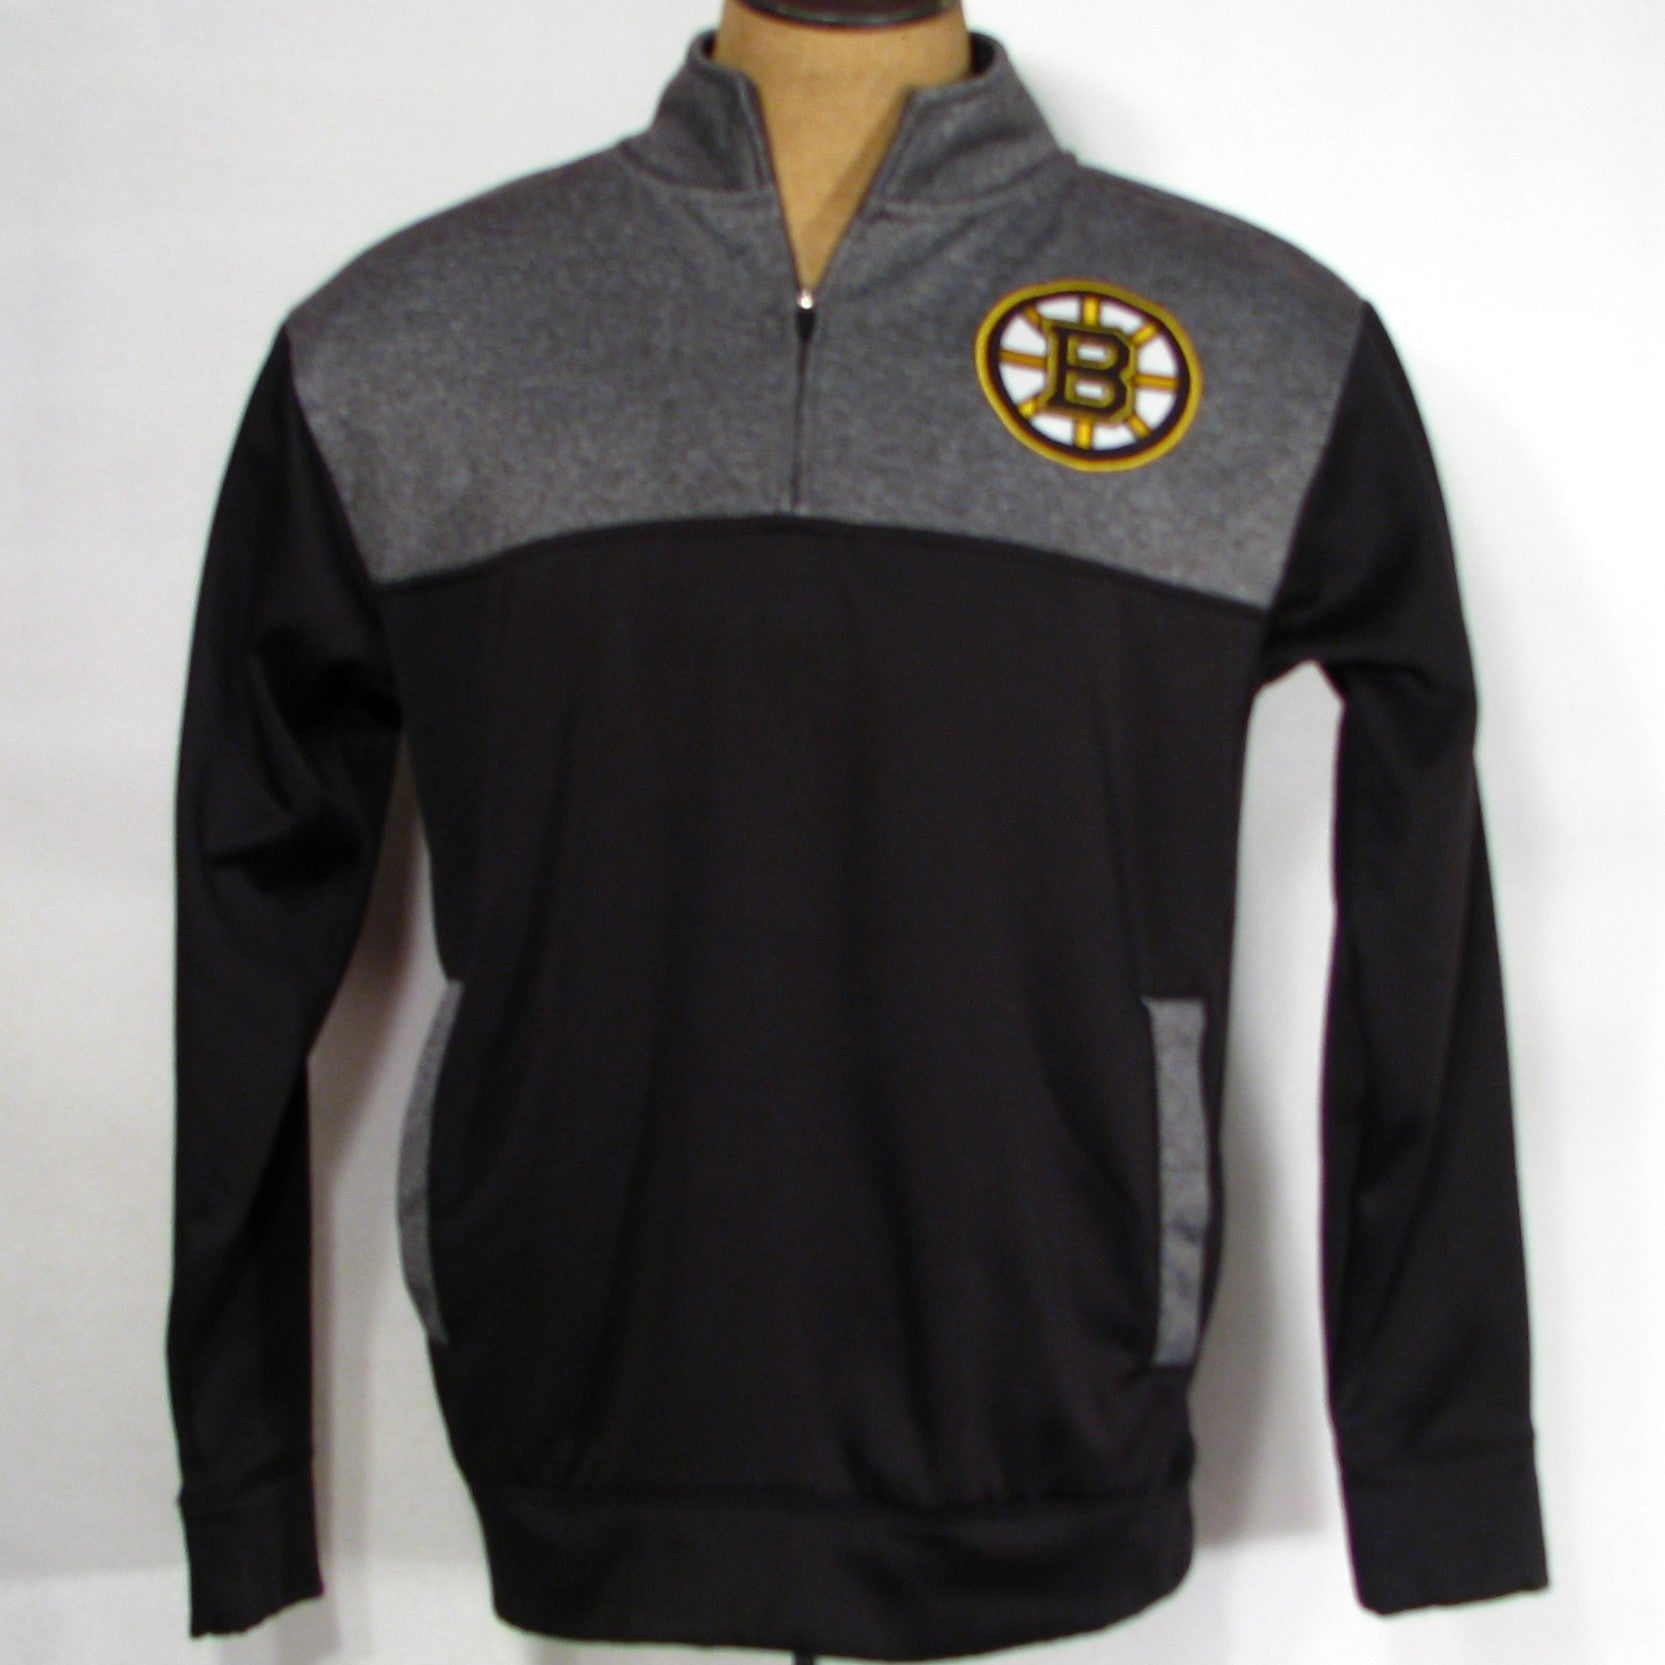 Boston Bruins zip up Sweatshirt